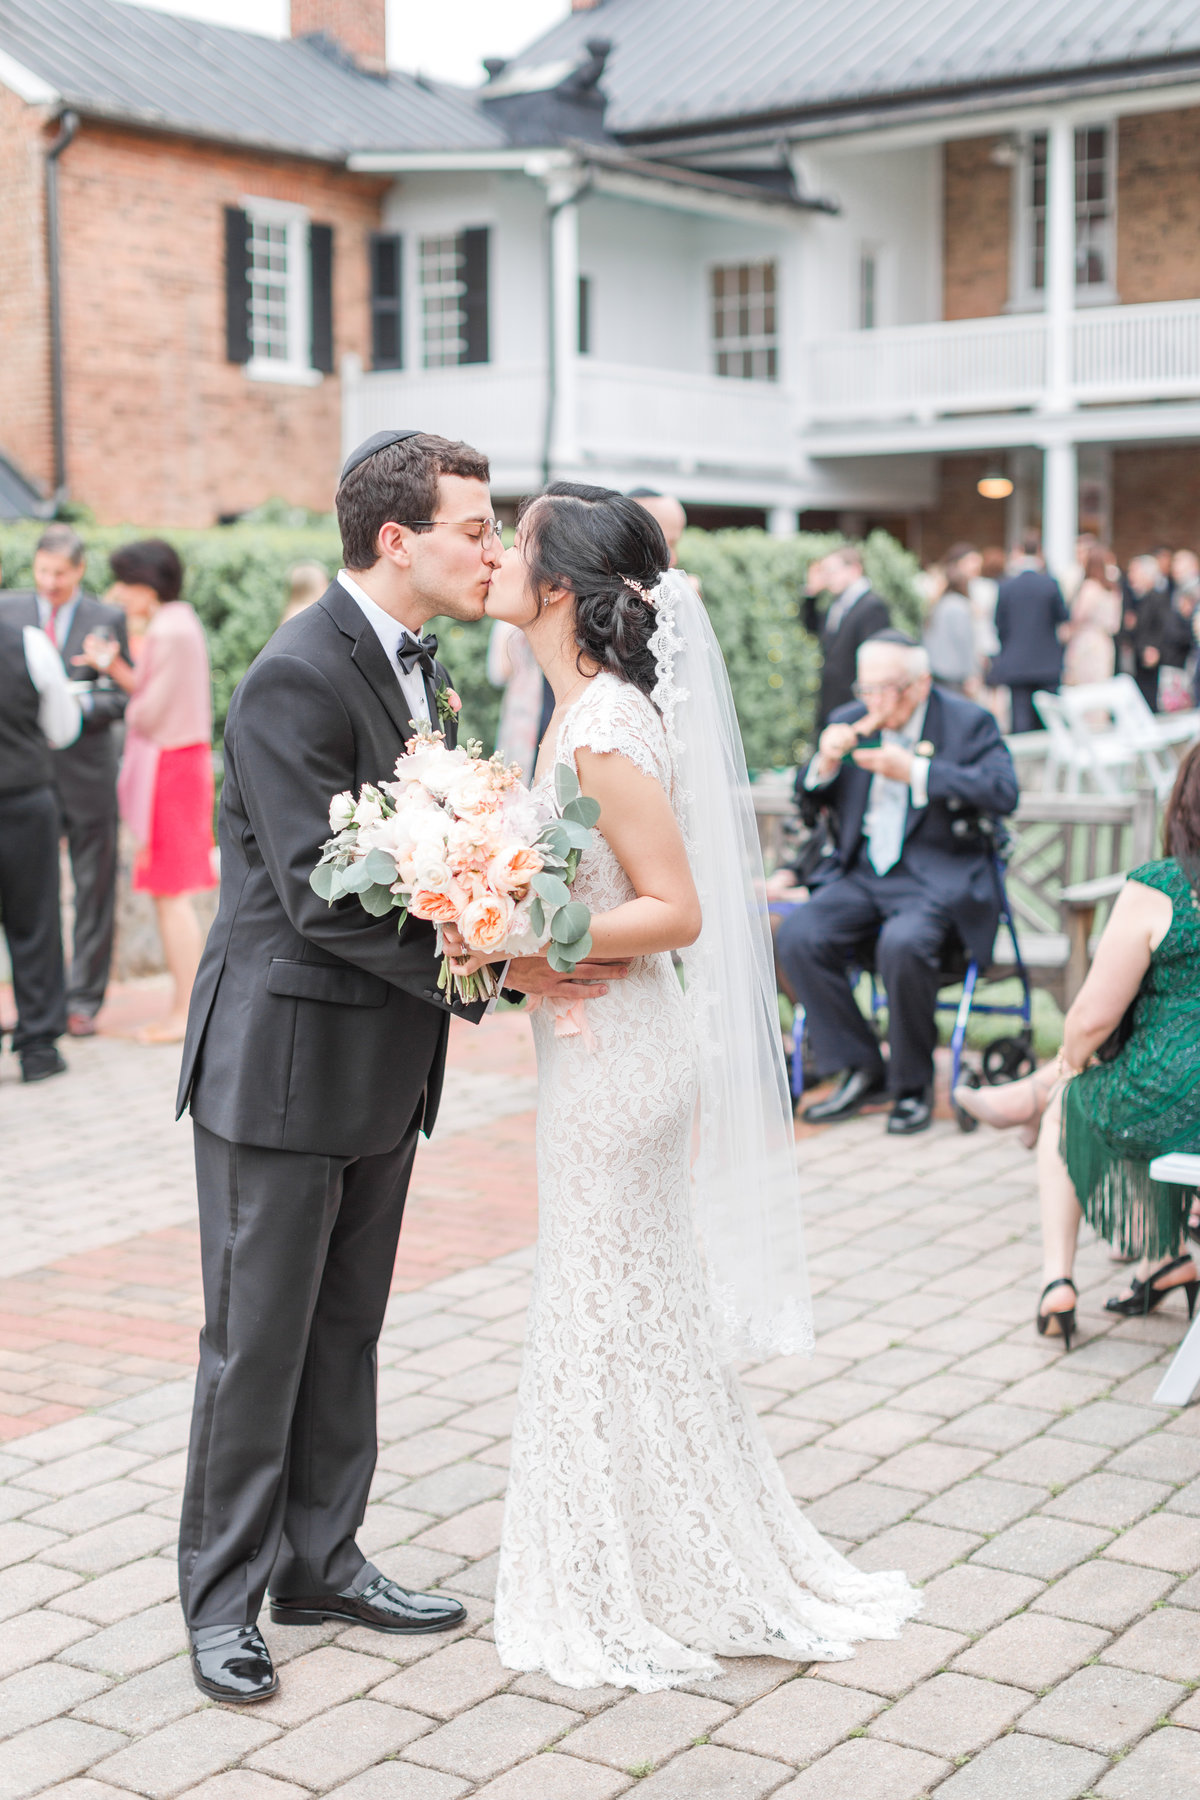 Leesburg-Wedding-Photos_Thomas-Birkby-House-Wedding_Jessica-Green-Photography-108